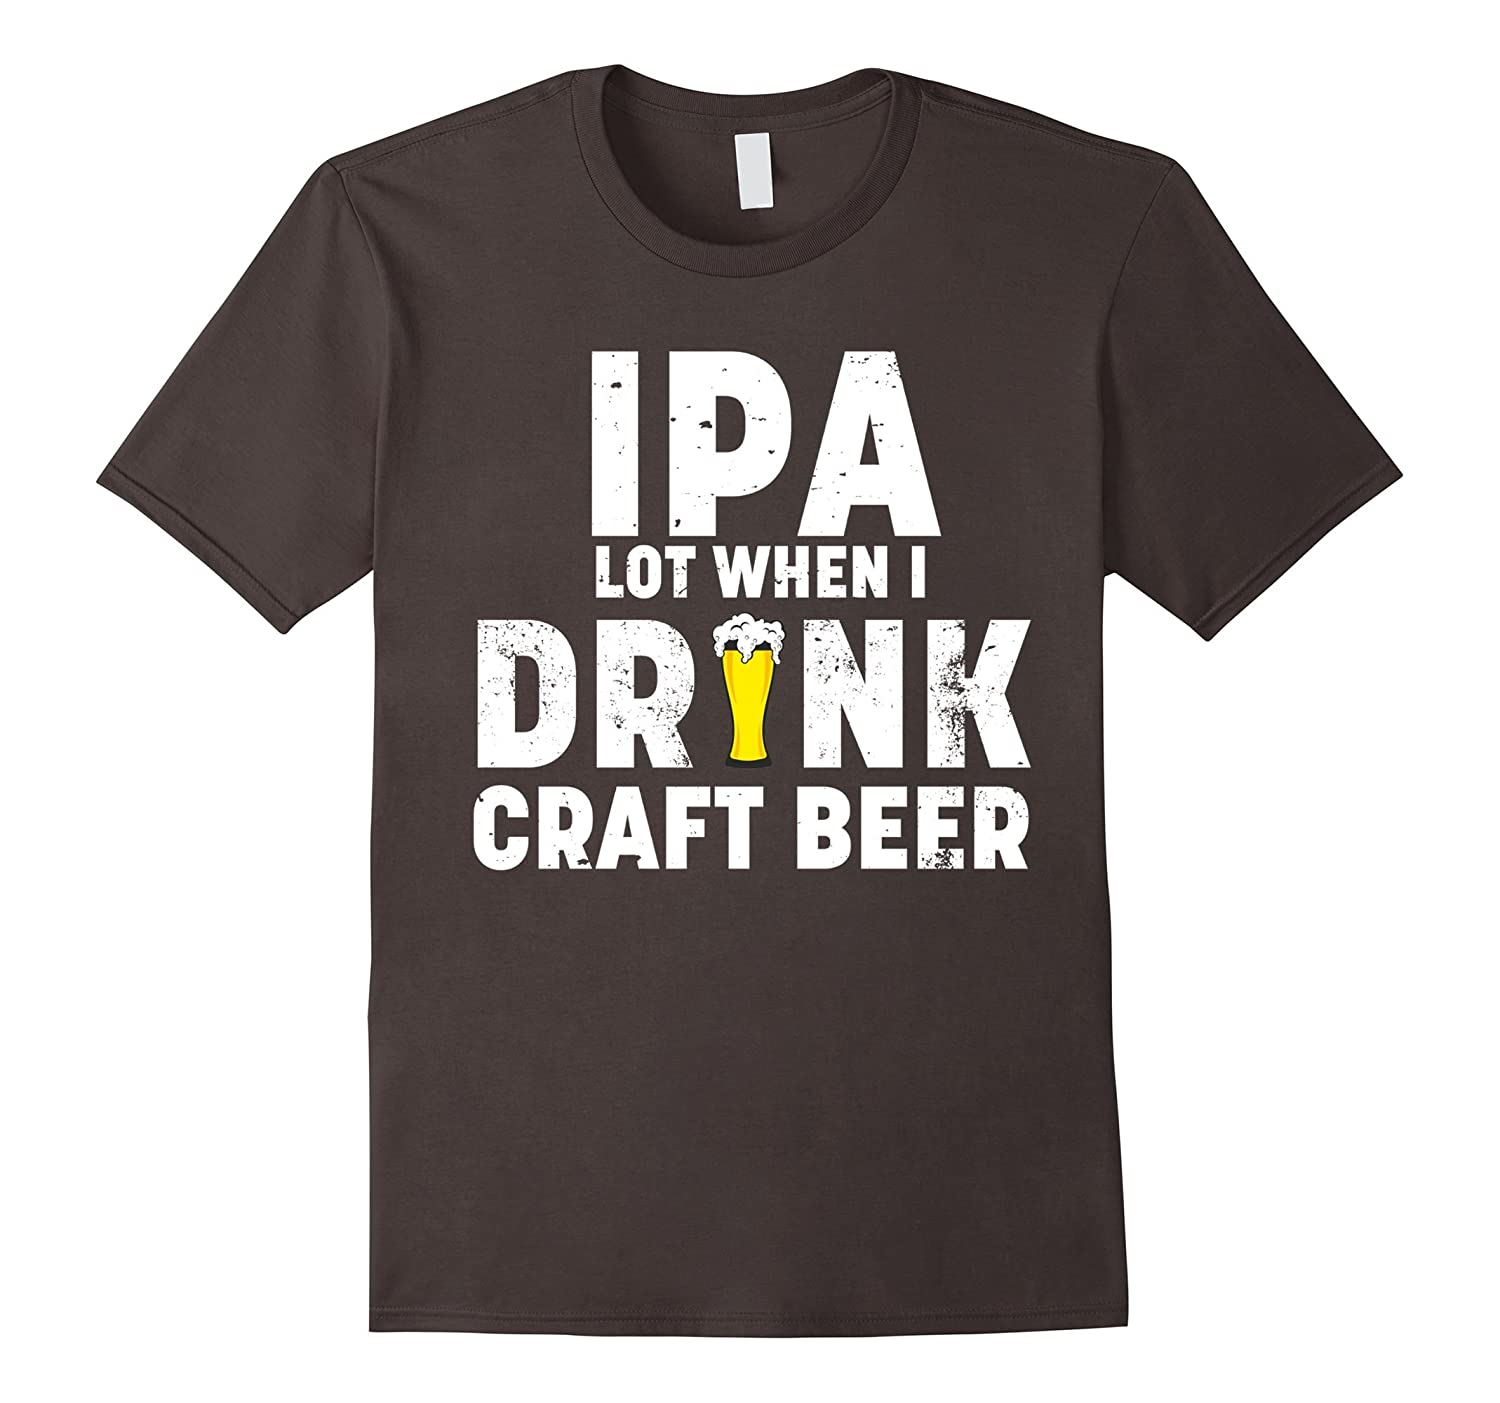 Craft beer shirt ipa lot when i drink craft beer funny for Funny craft beer shirts